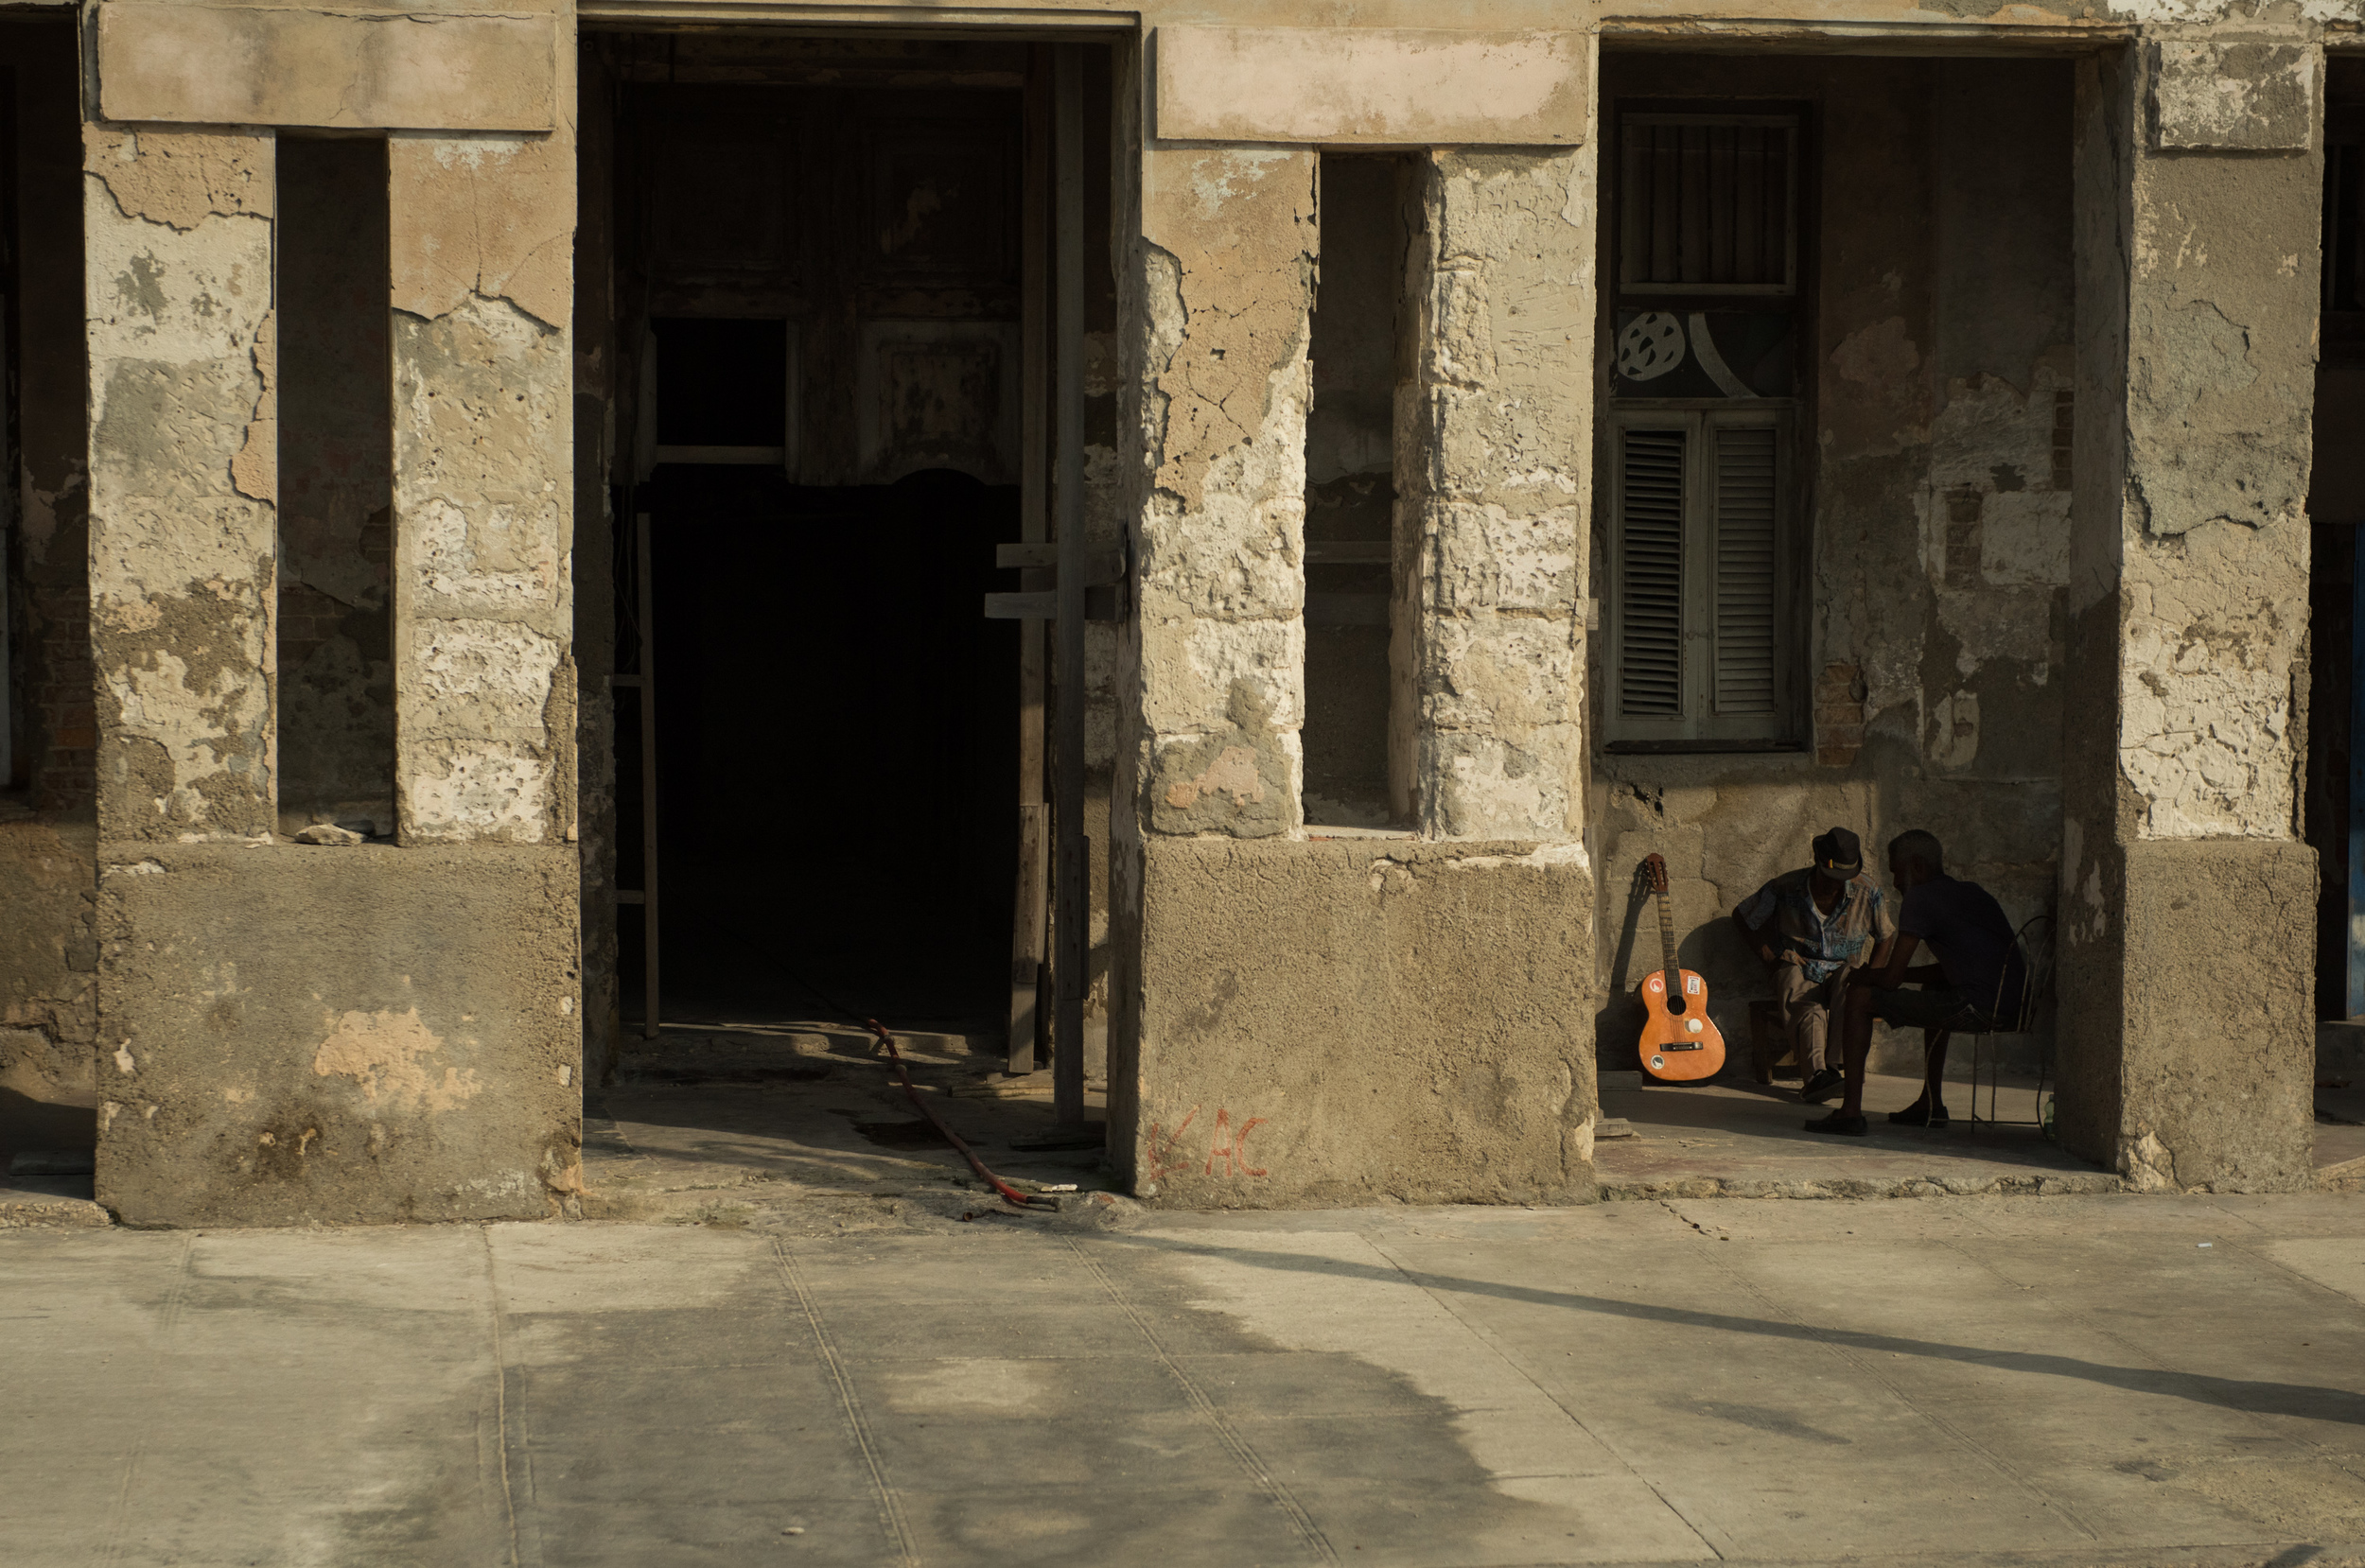 A street scene from the bus as the Minnesota Orchestra's tour bus headed to the hotel in Havana.